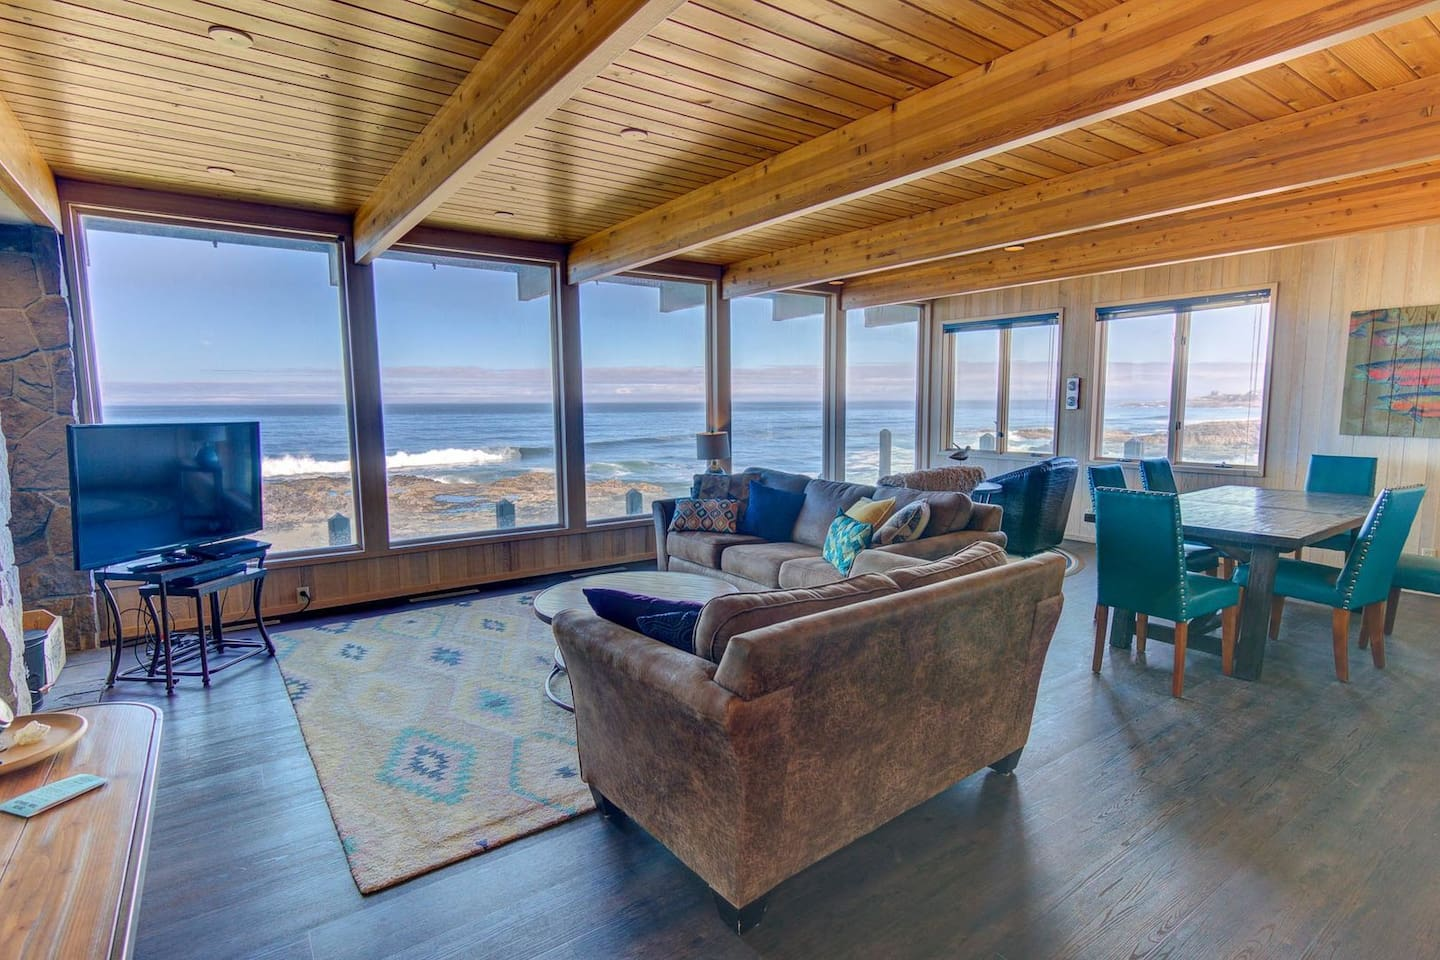 This home is oceanfront relaxation at its best.